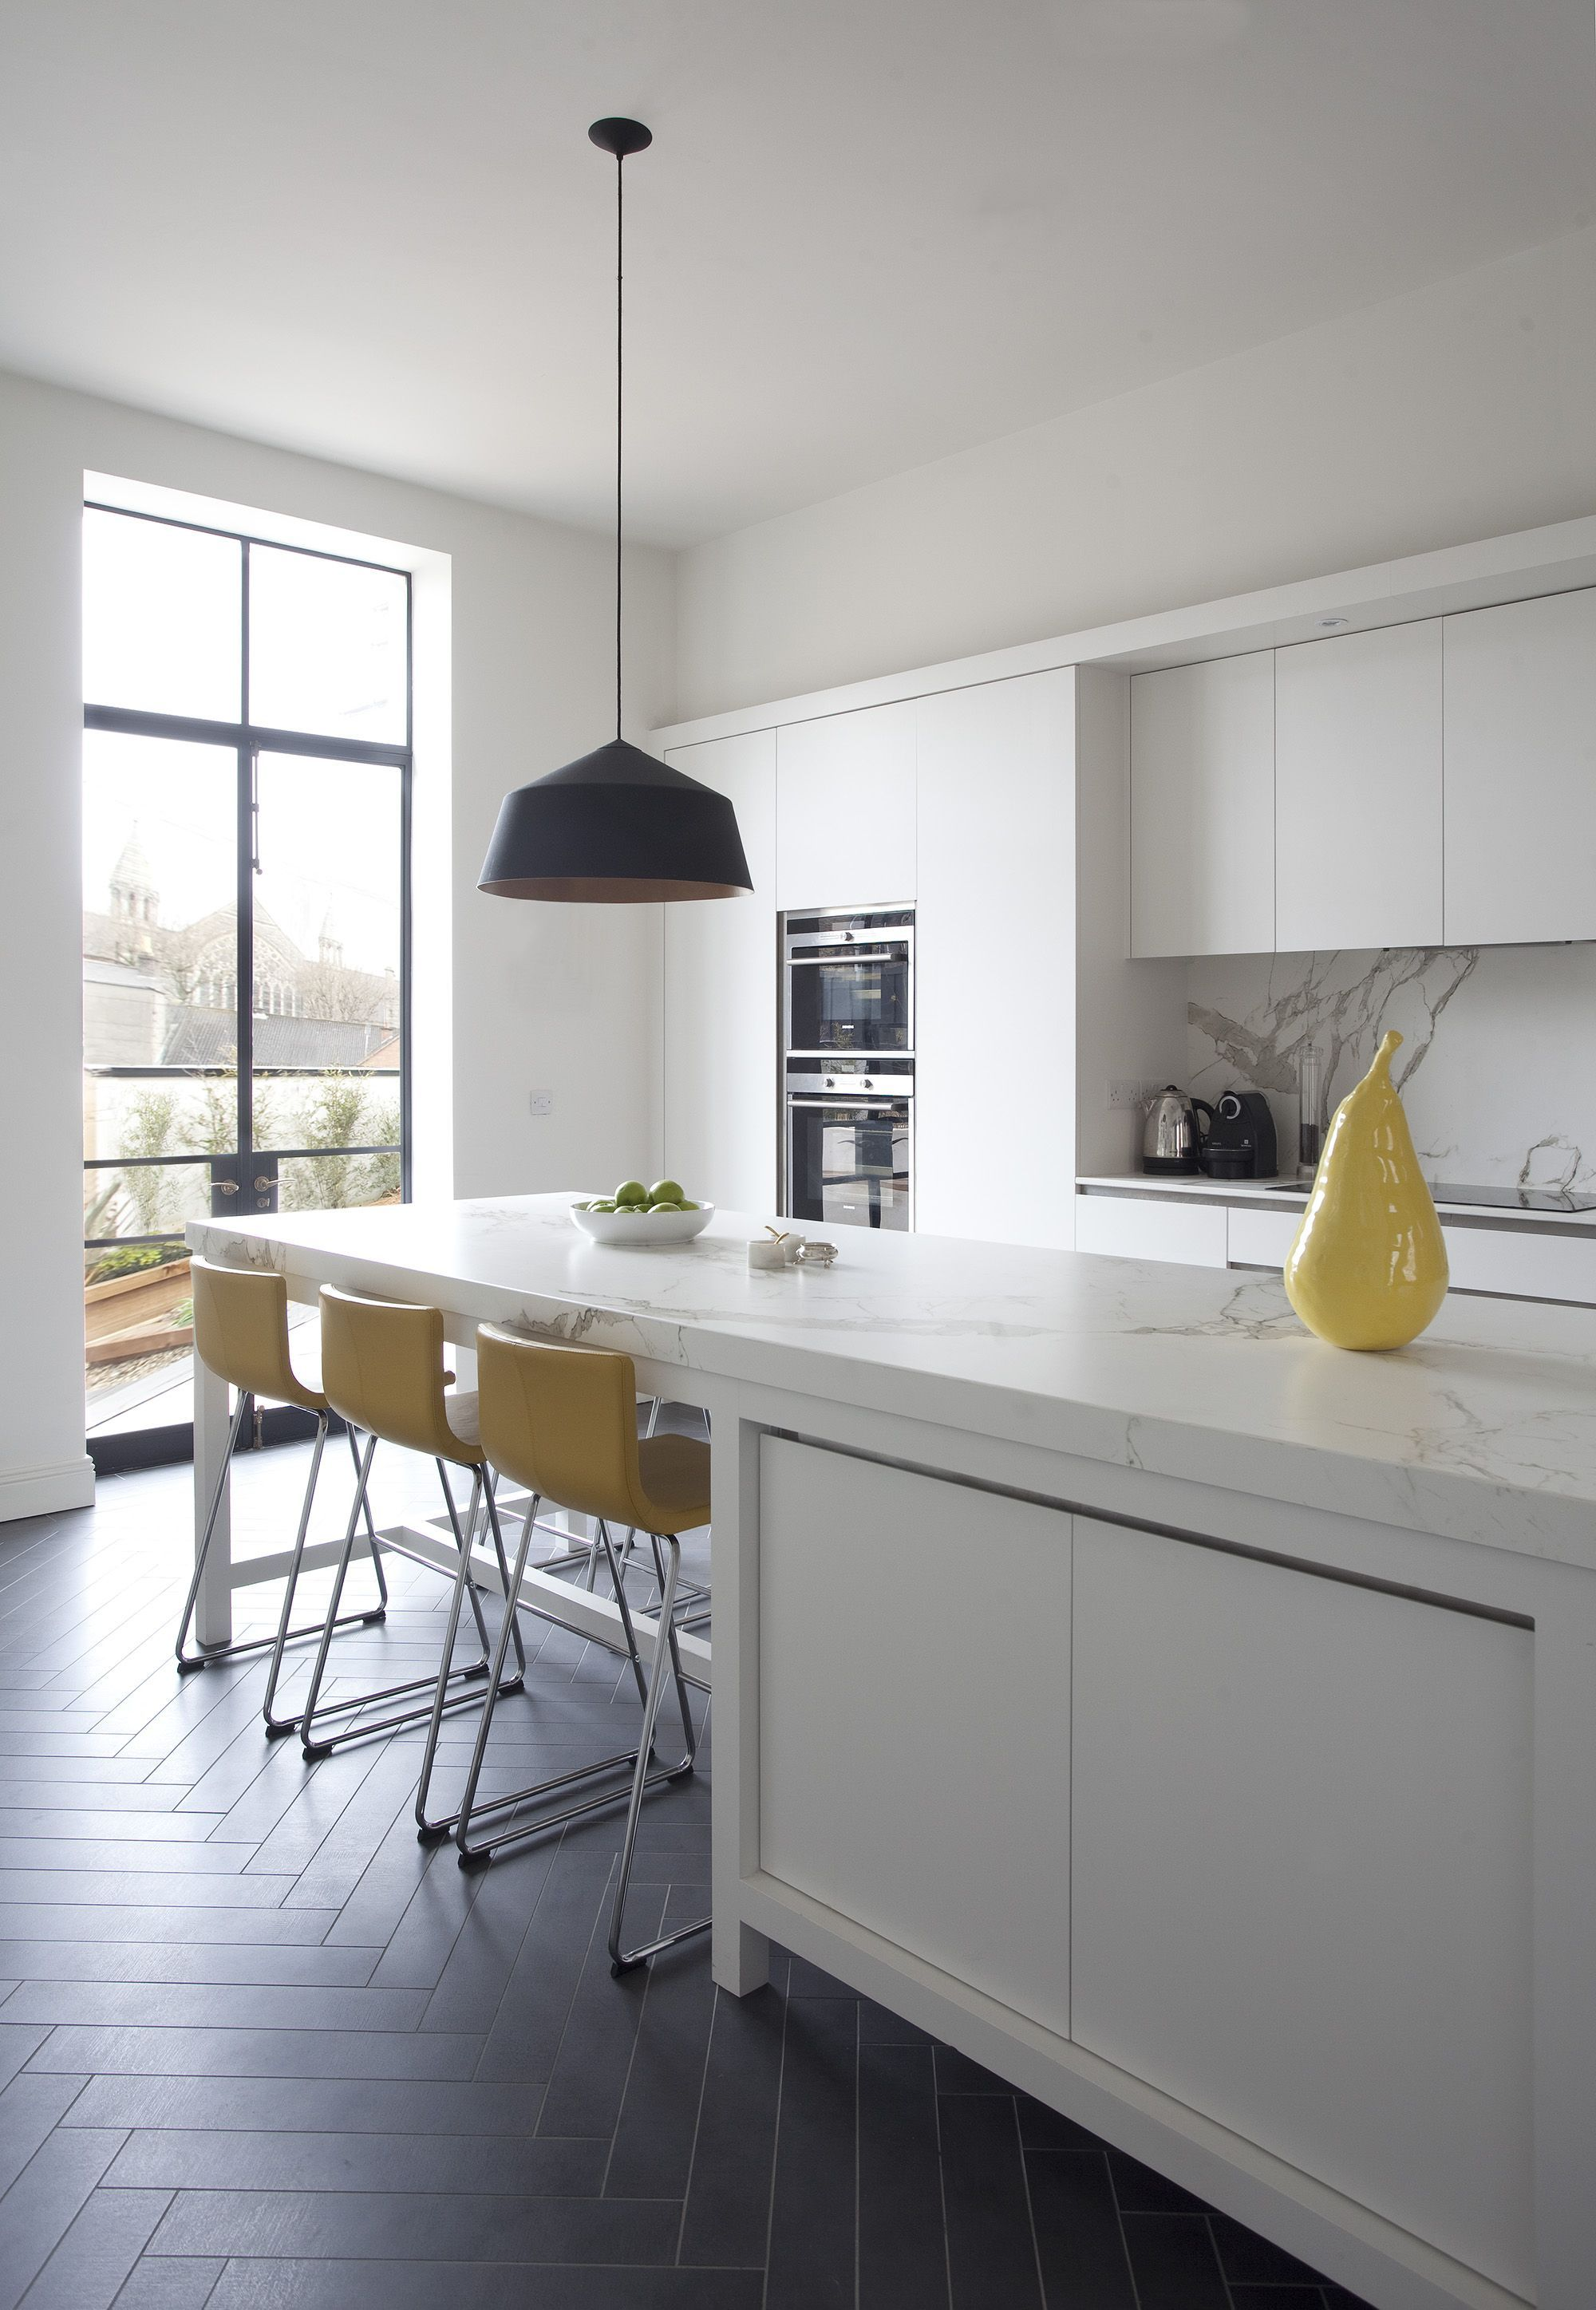 Newcastle Design Are Irelands A Premier Kitchen Design & Interiors